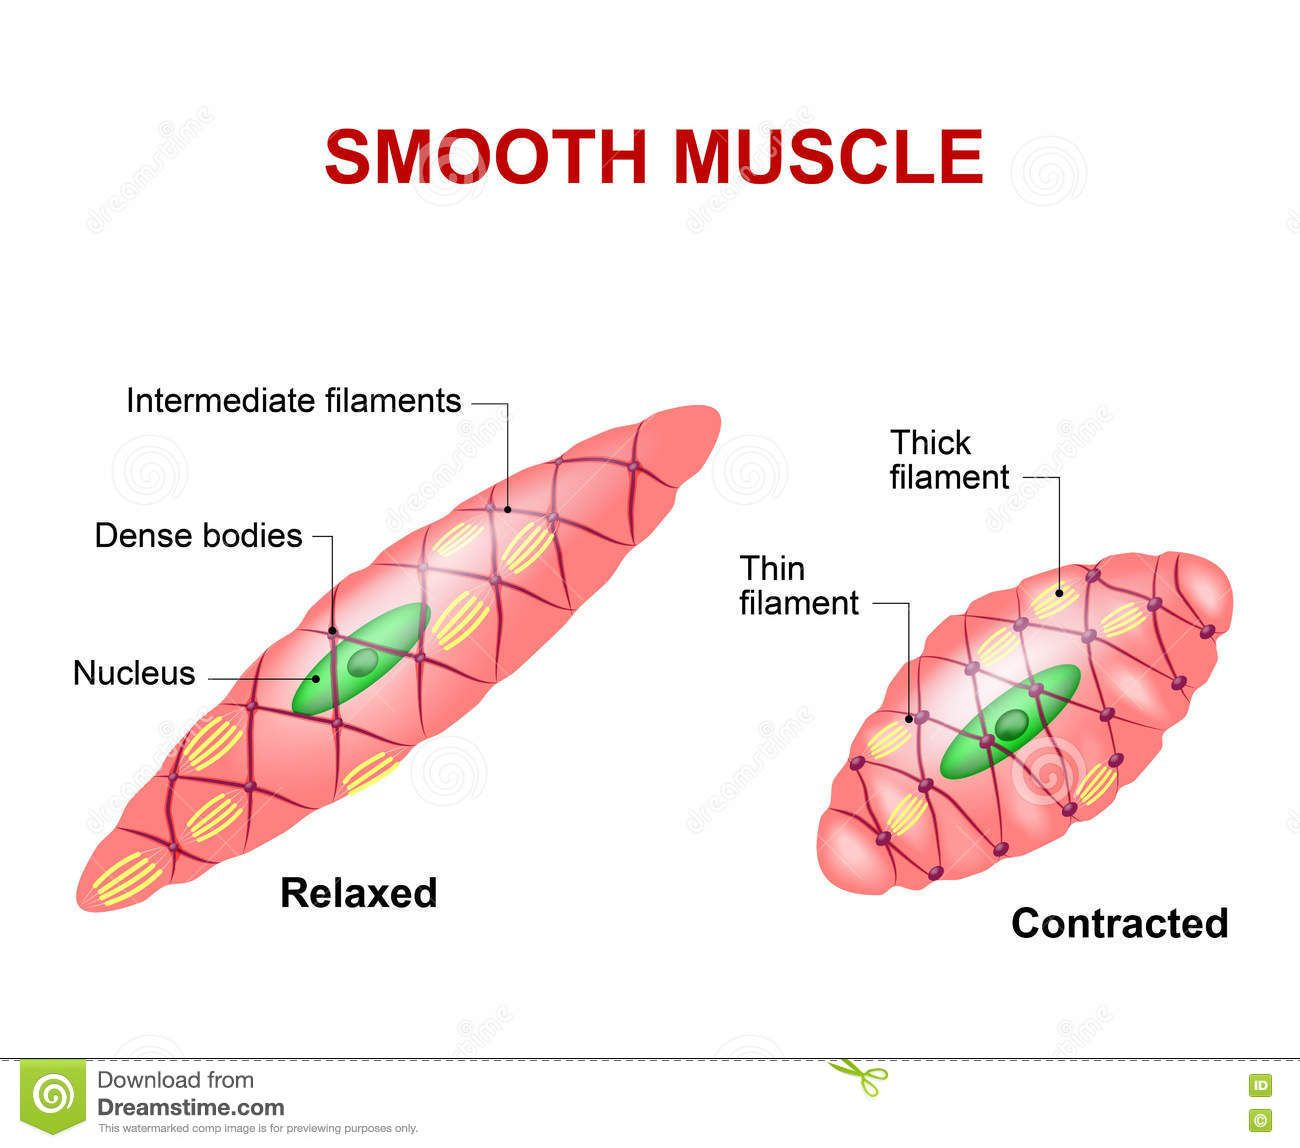 human muscle cell diagram ecu wiring subaru anatomy study pinterest smooth tissue stock vector illustration of